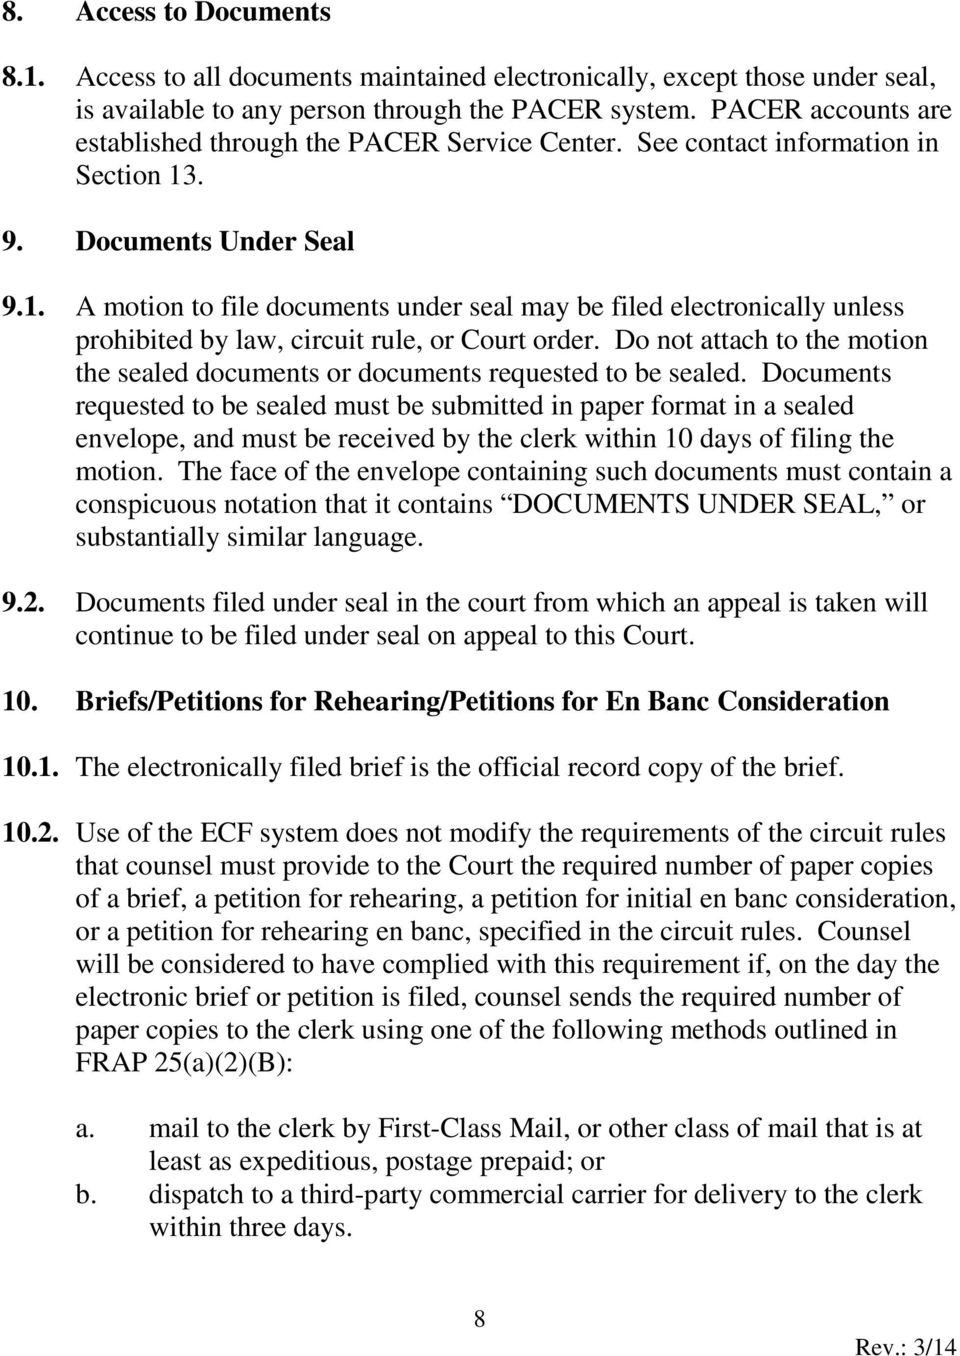 . 9. Documents Under Seal 9.1. A motion to file documents under seal may be filed electronically unless prohibited by law, circuit rule, or Court order.